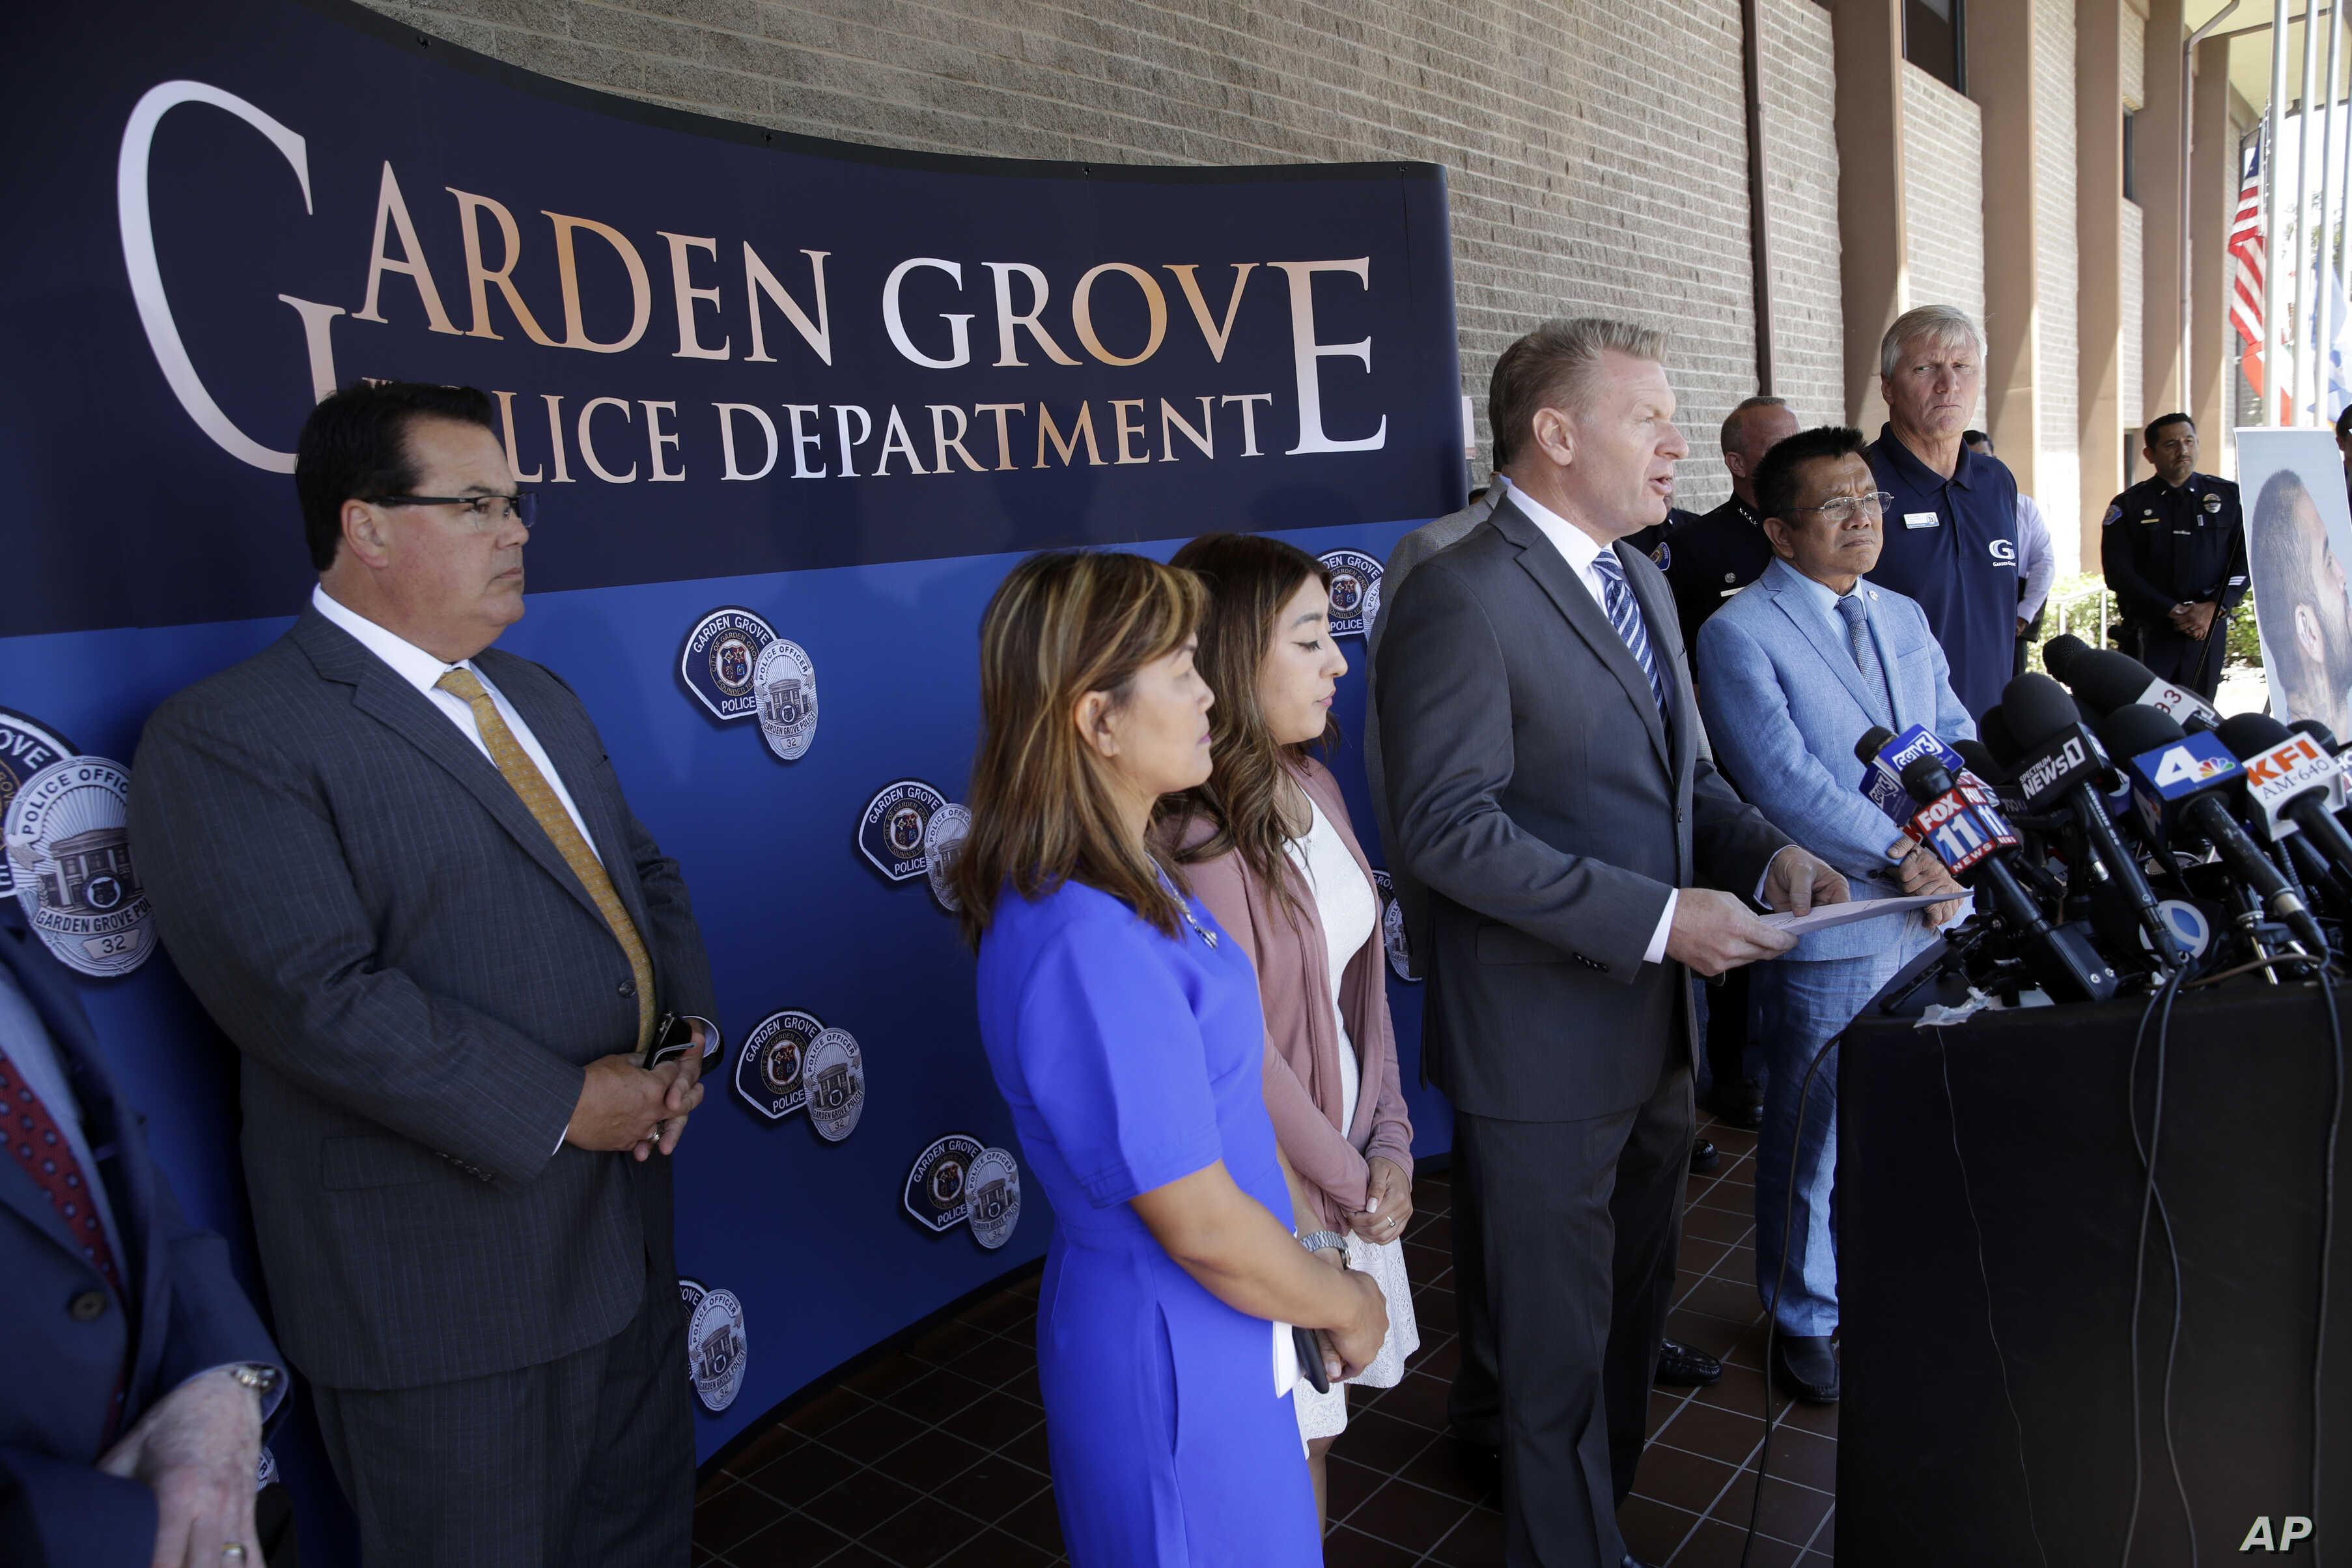 Garden Grove Mayor Steven R. Jones, fourth from left, speaks during a news conference following the arrest of Zachary Castaneda outside of the Garden Grove Police Department headquarters in Garden Grove, Calif., Thursday, Aug. 8, 2019. Investigators…